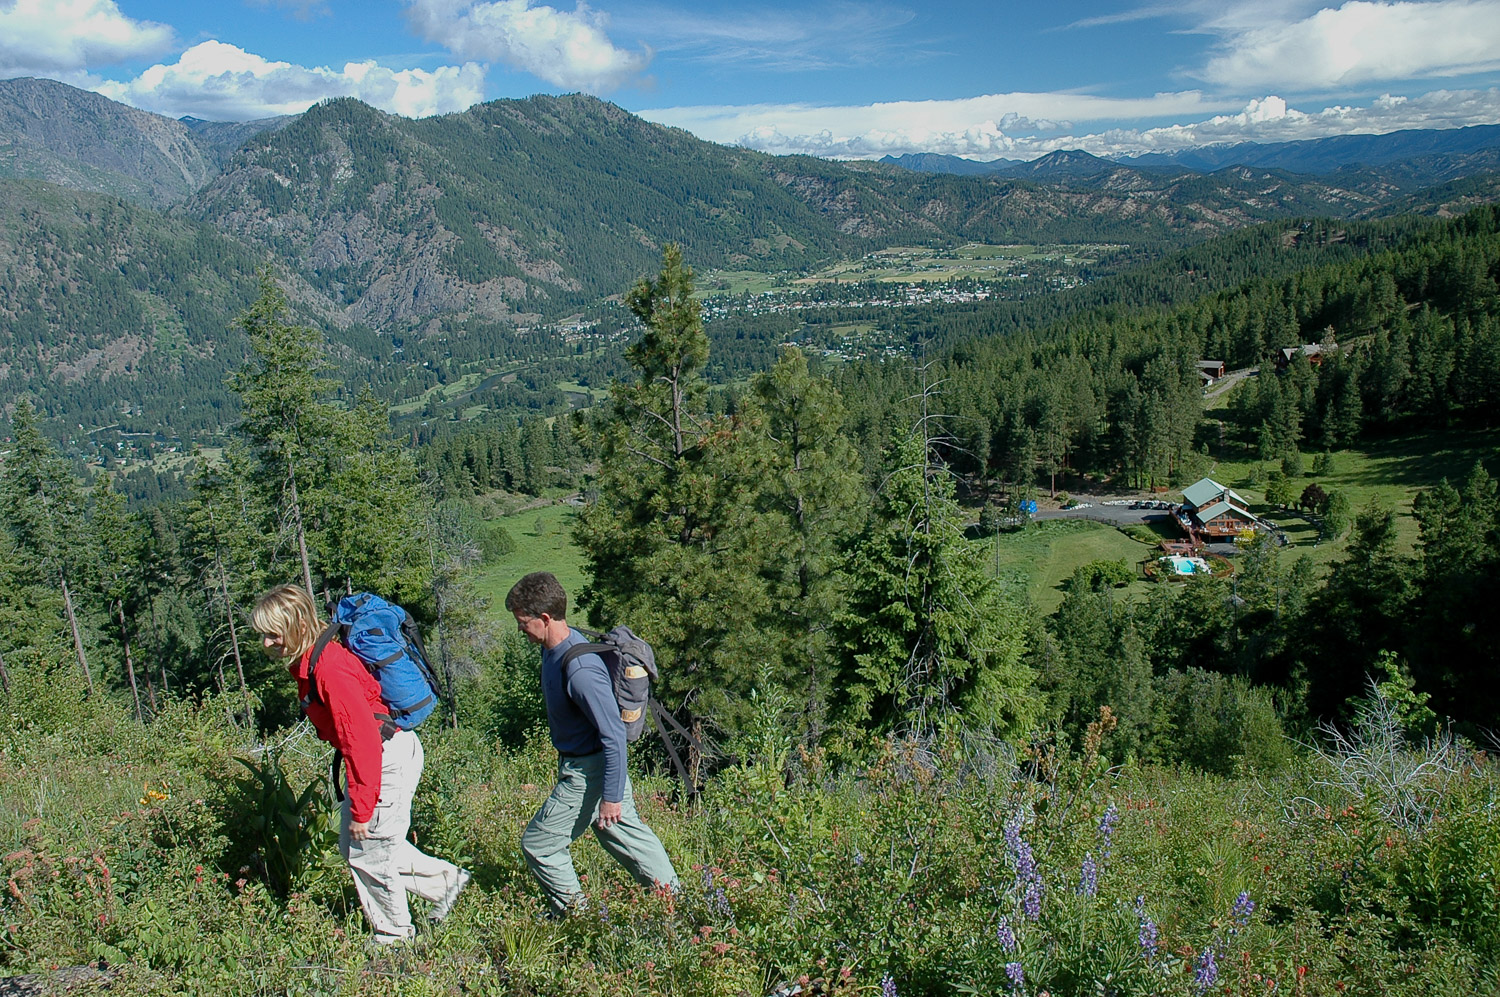 Our Overlook Trail for spring hiking with MHL and Leavenworth in the background.